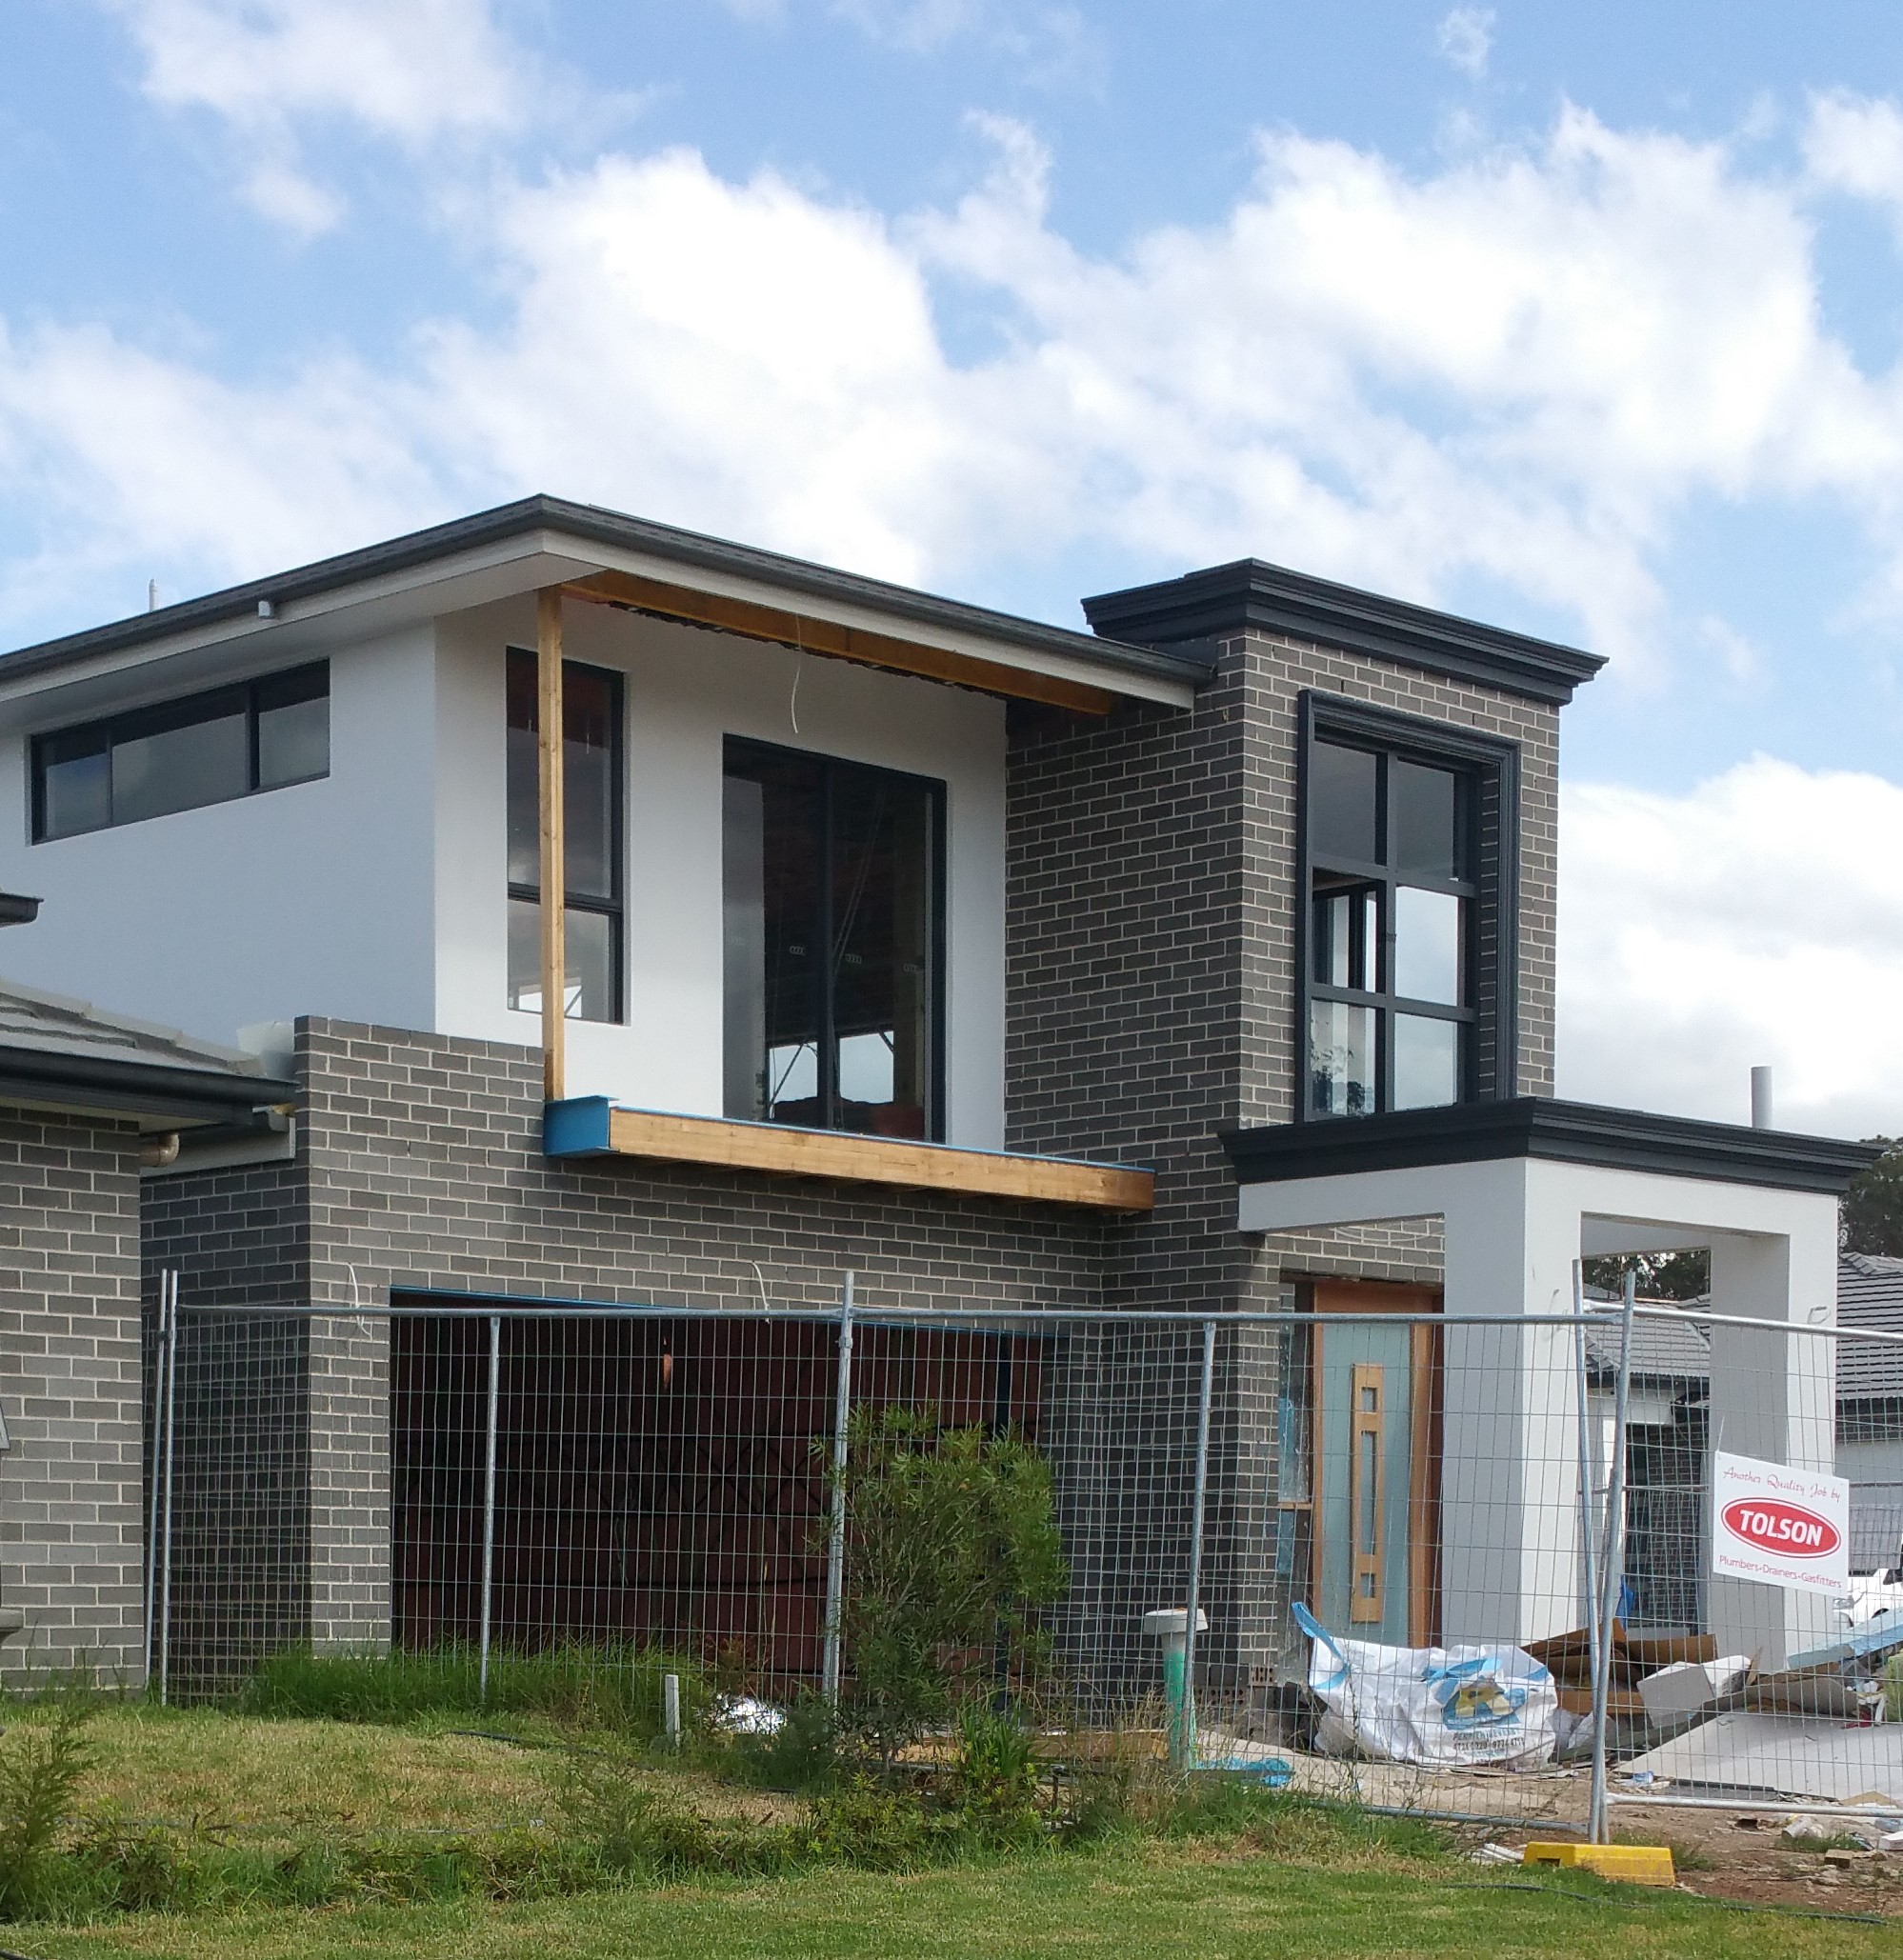 82 home design and drafting services beautiful home design quality home design drafting services in sydney metro area that are aimed to get you the malvernweather Gallery